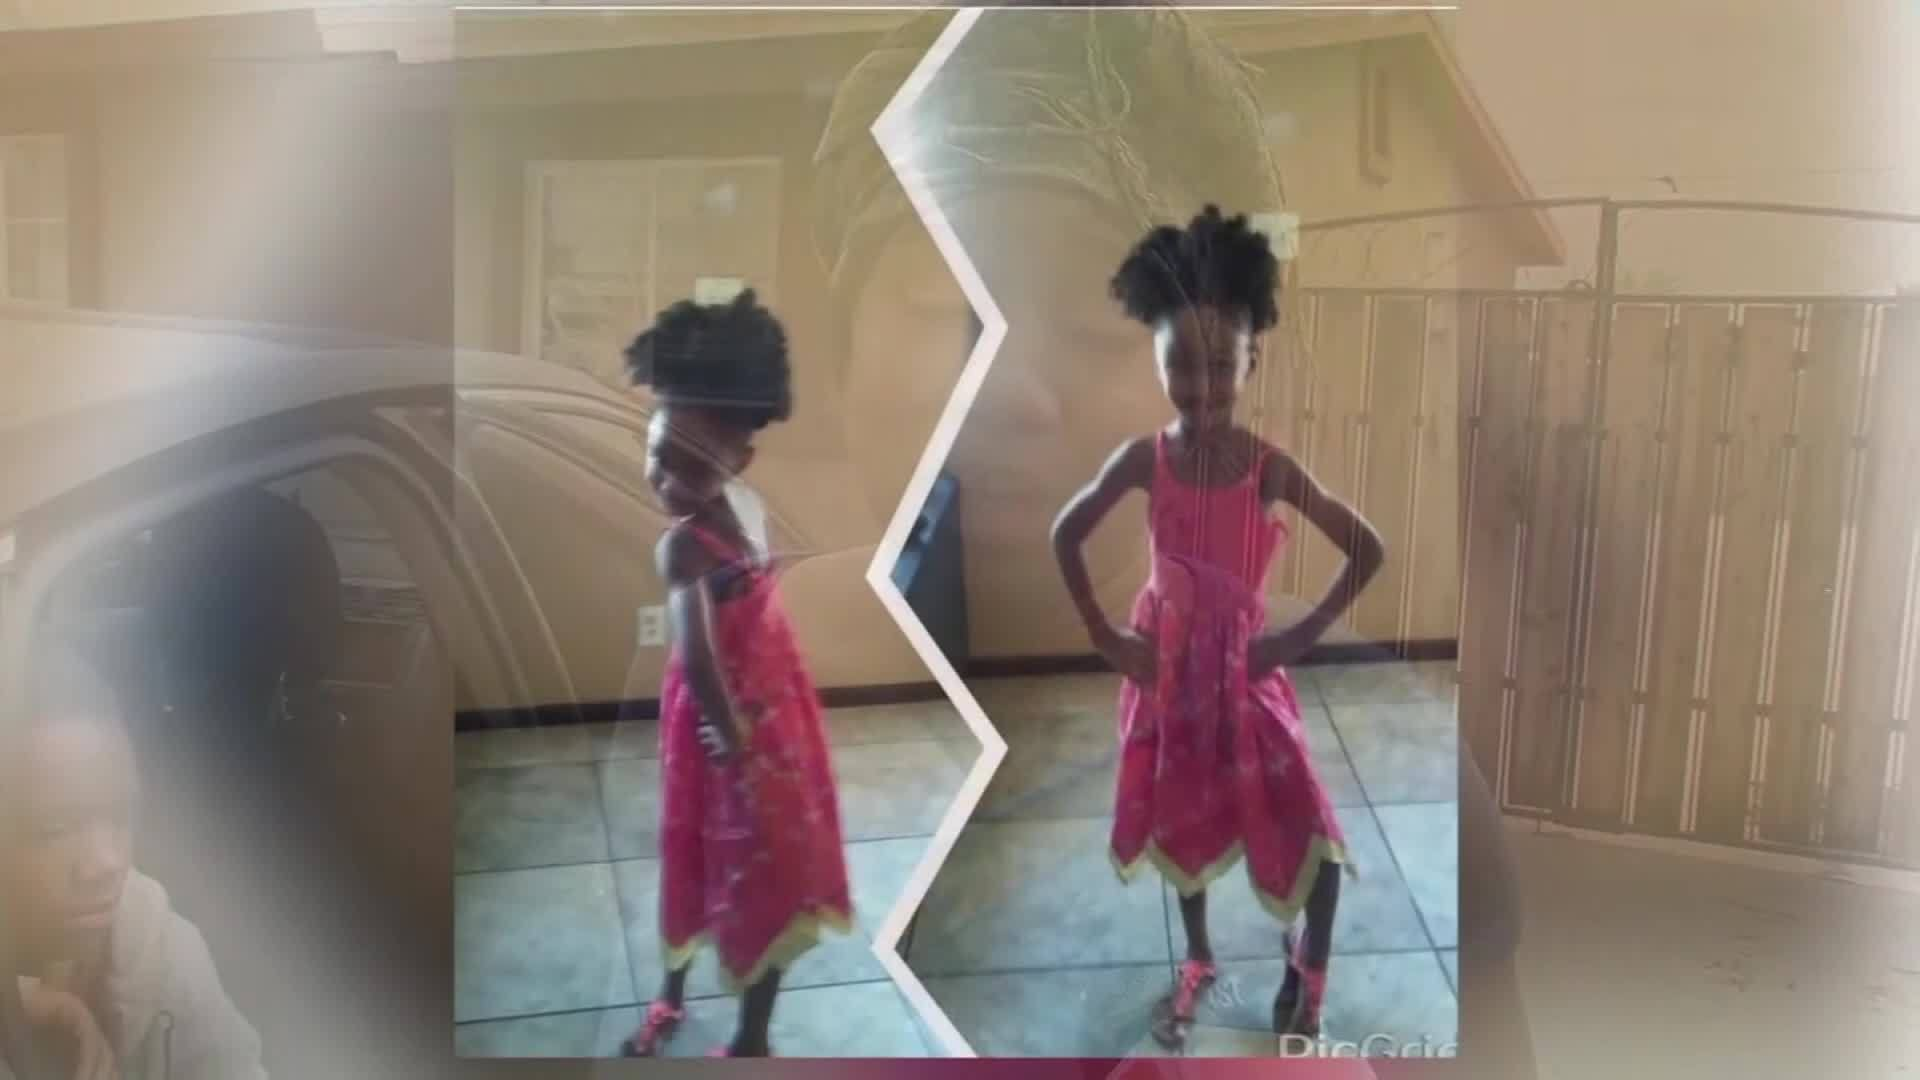 VIDEO: 10-year-old girl killed in her driveway in road rage shooting